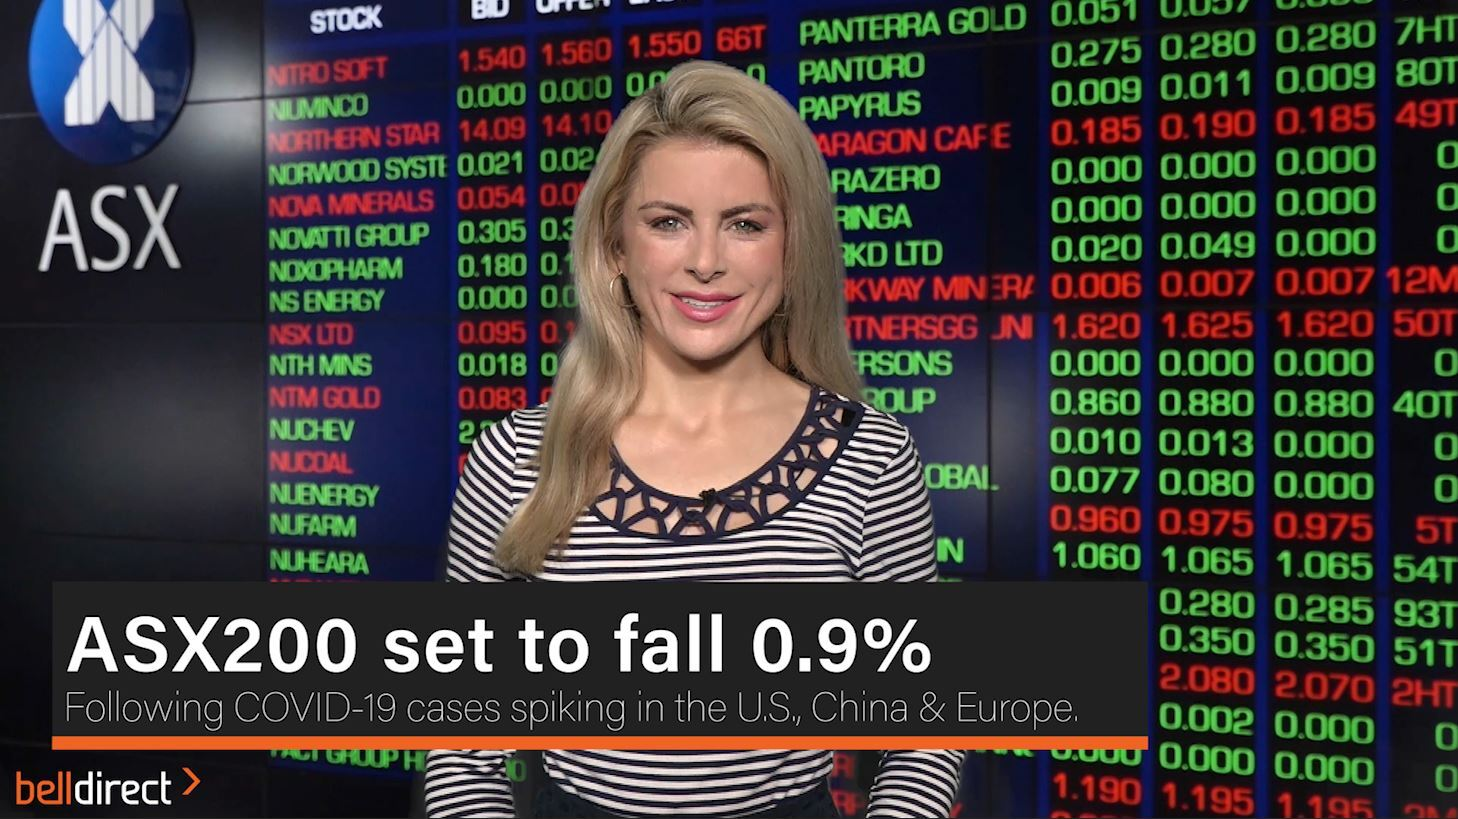 ASX200 set to fall 0.9%